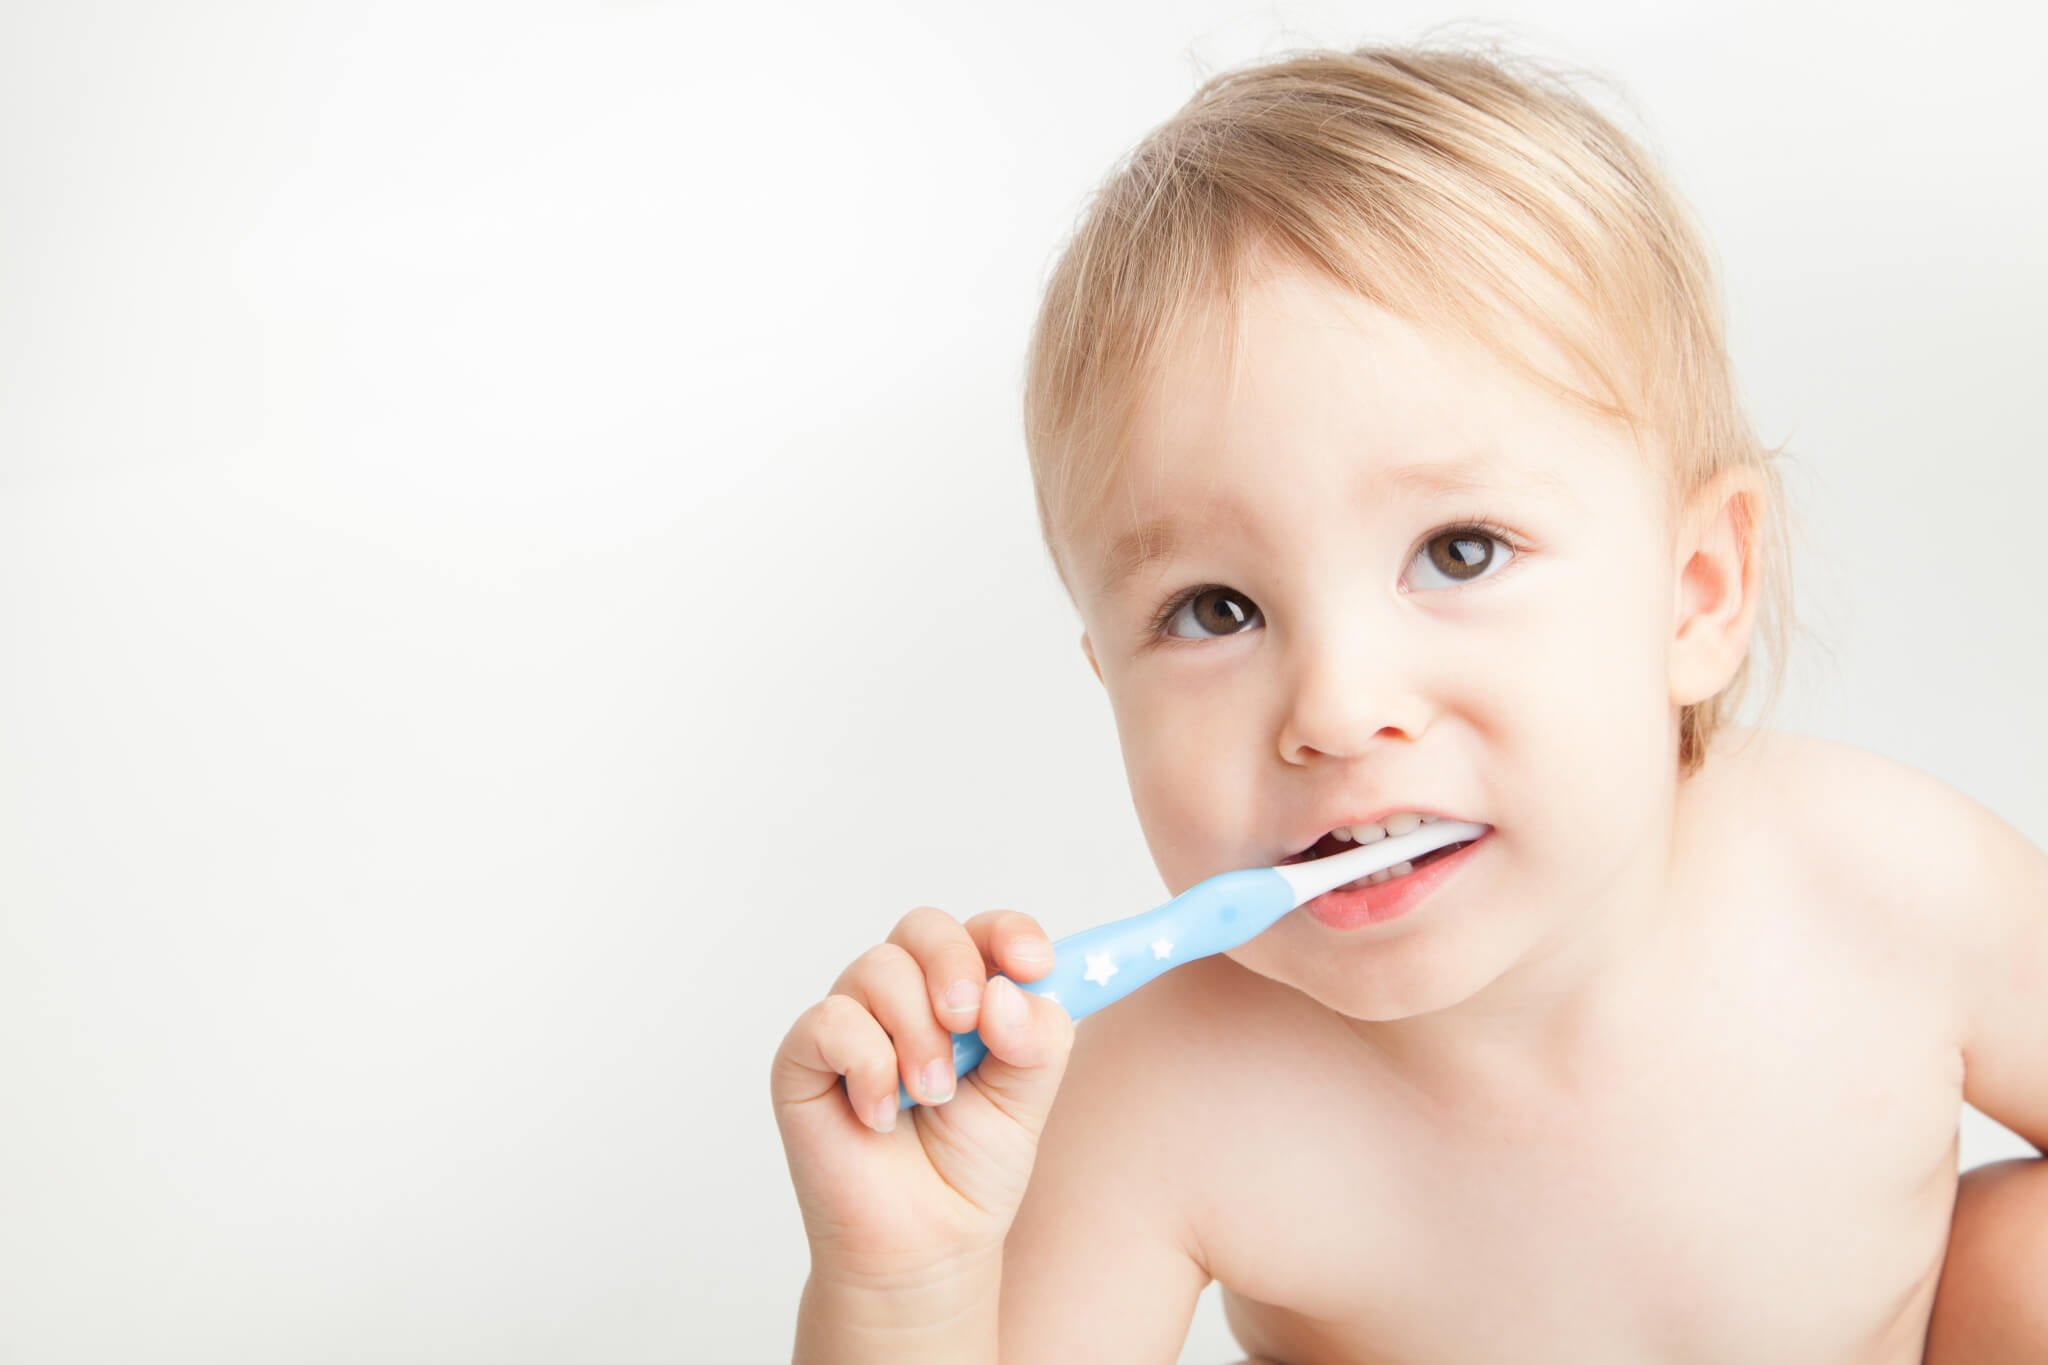 Children's Dentist Melbourne - Boy brushing teeth